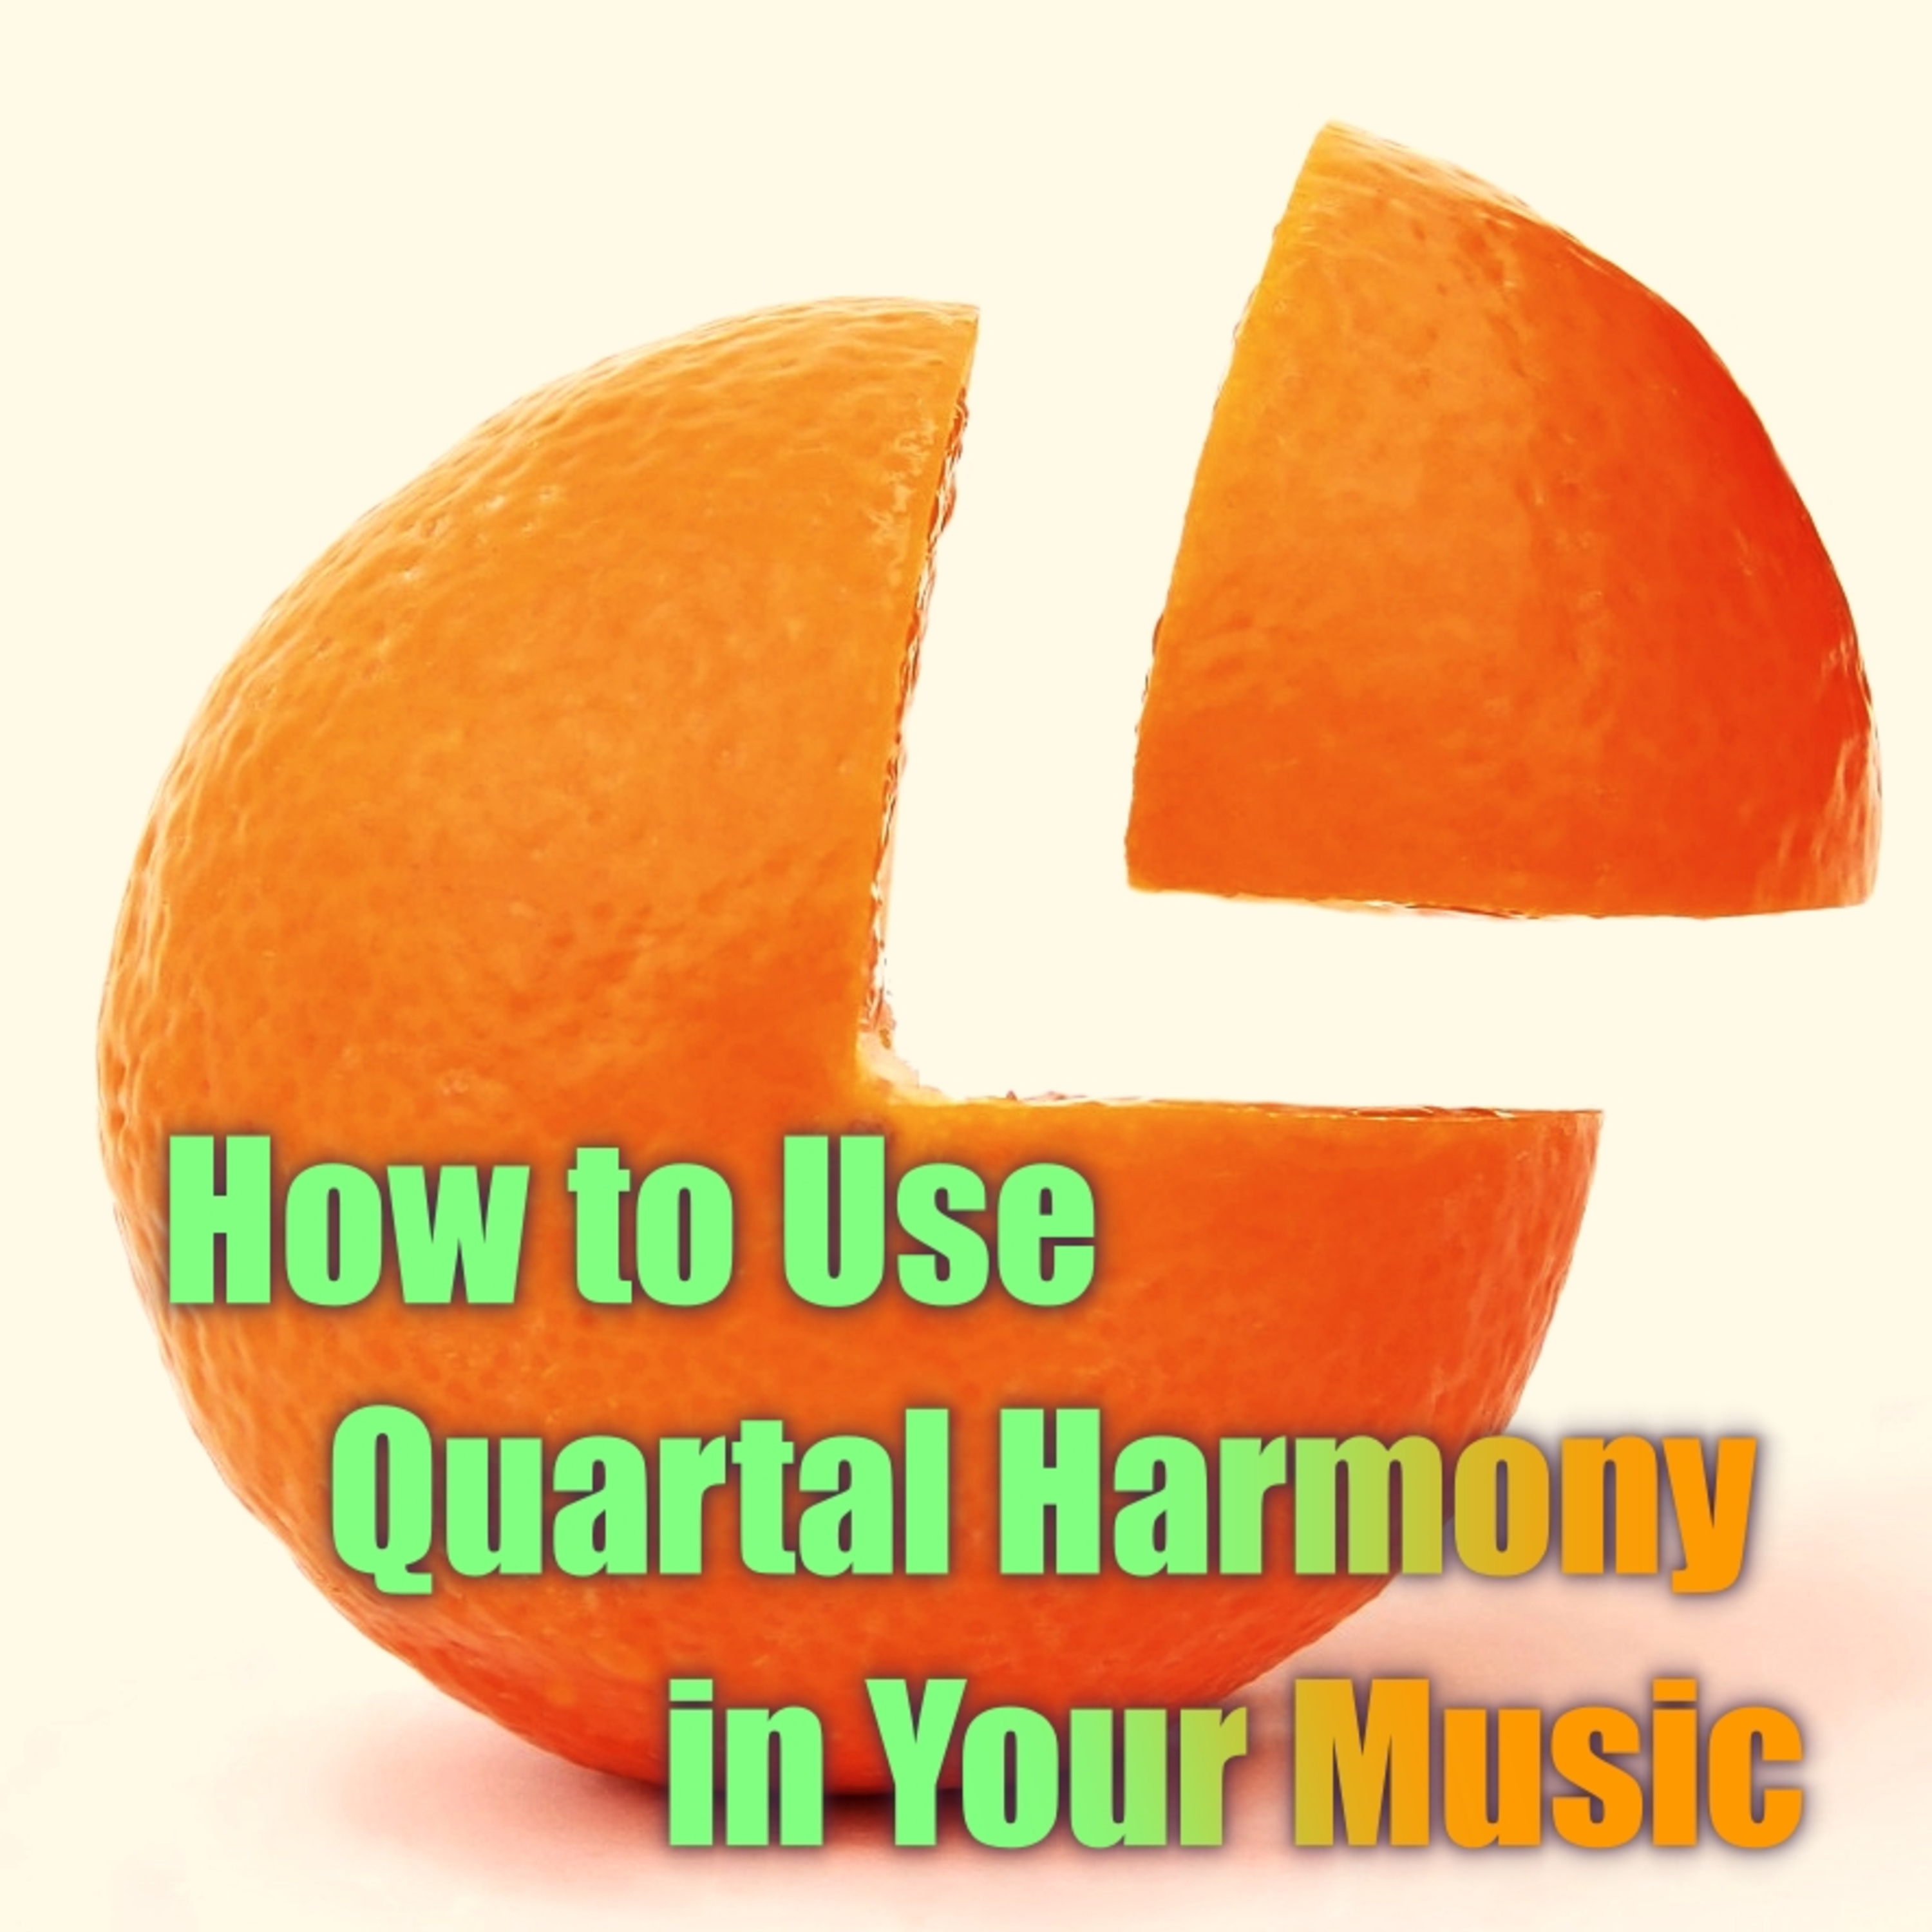 How to Use Quartal Harmony in Your Music